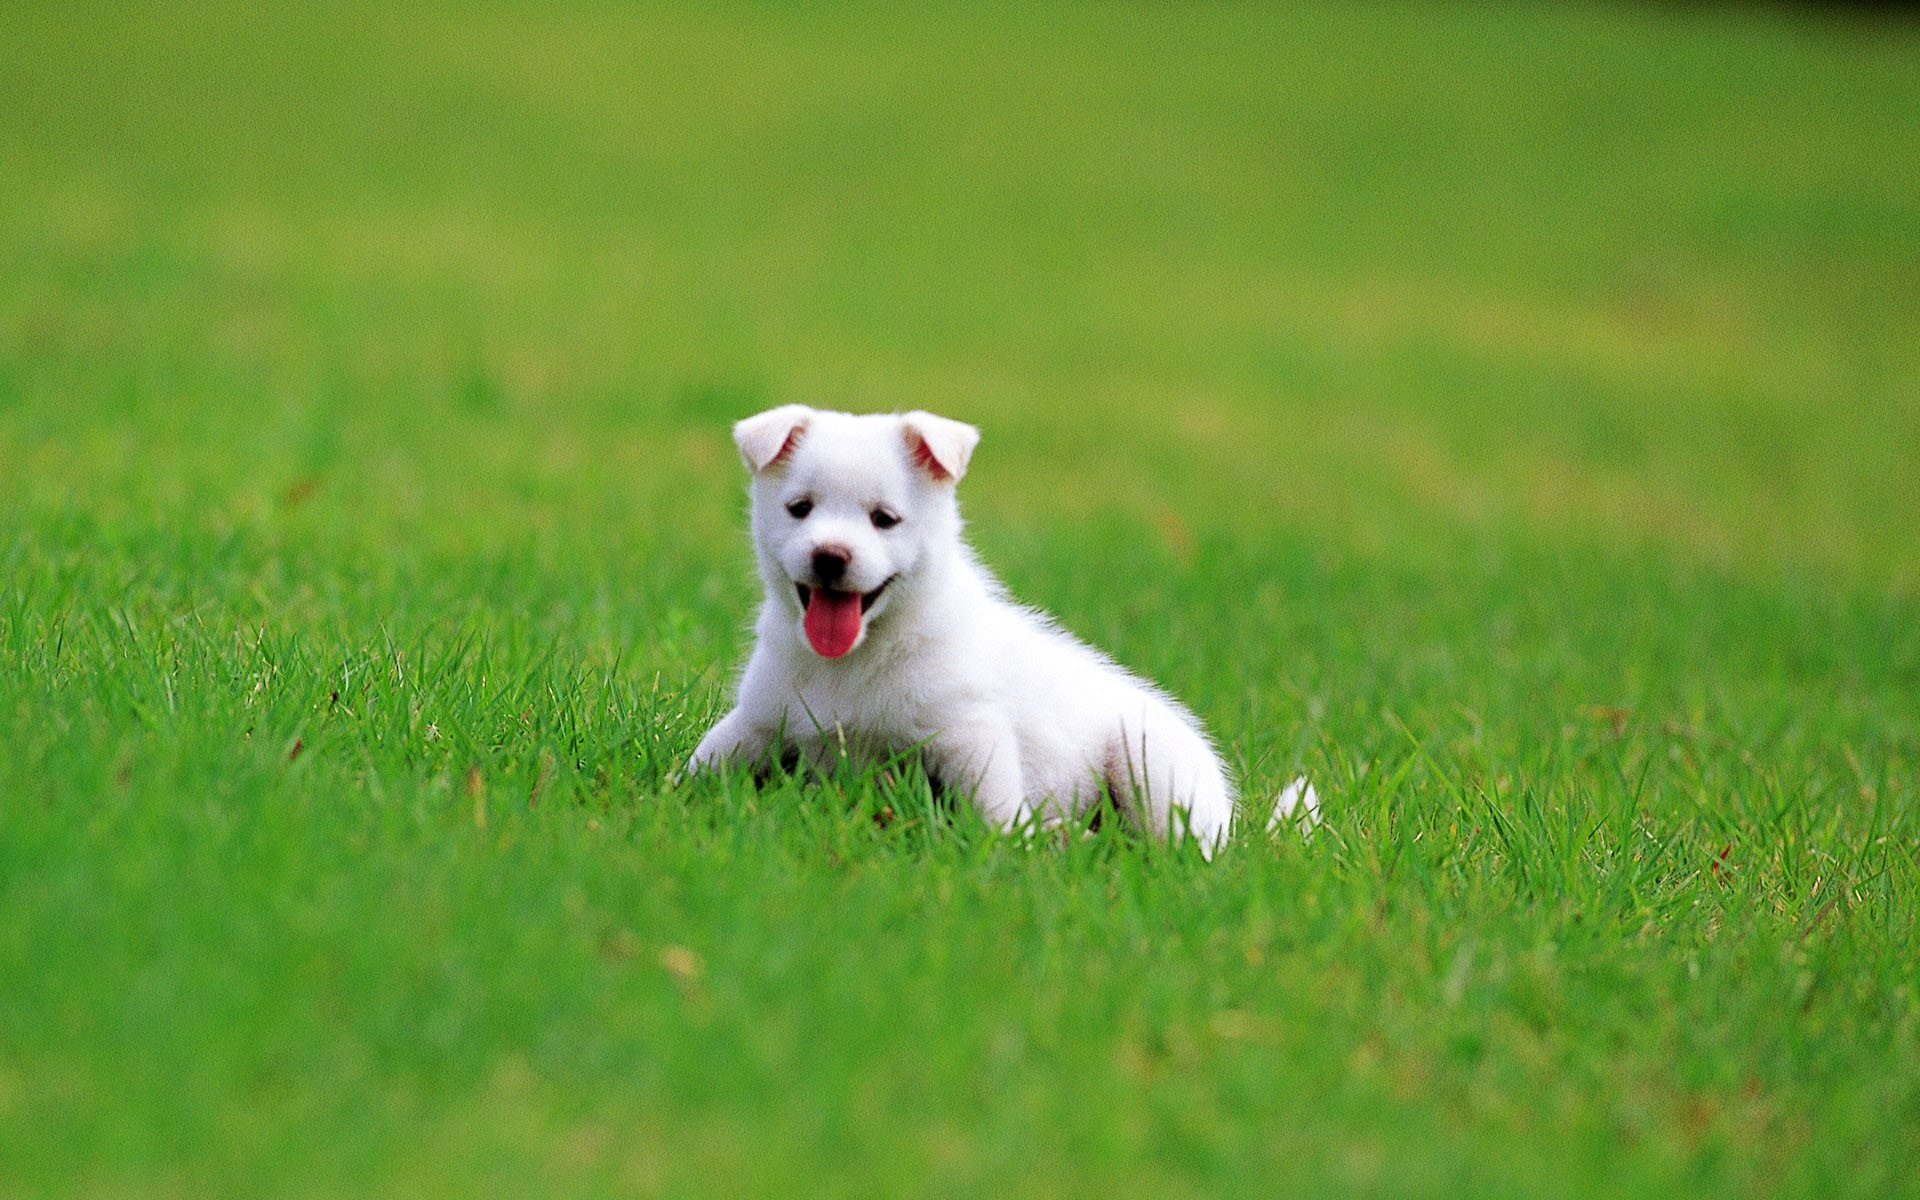 Puppy Backgrounds   Wallpaper  High Definition  High Quality  Widescreen Puppy Backgrounds